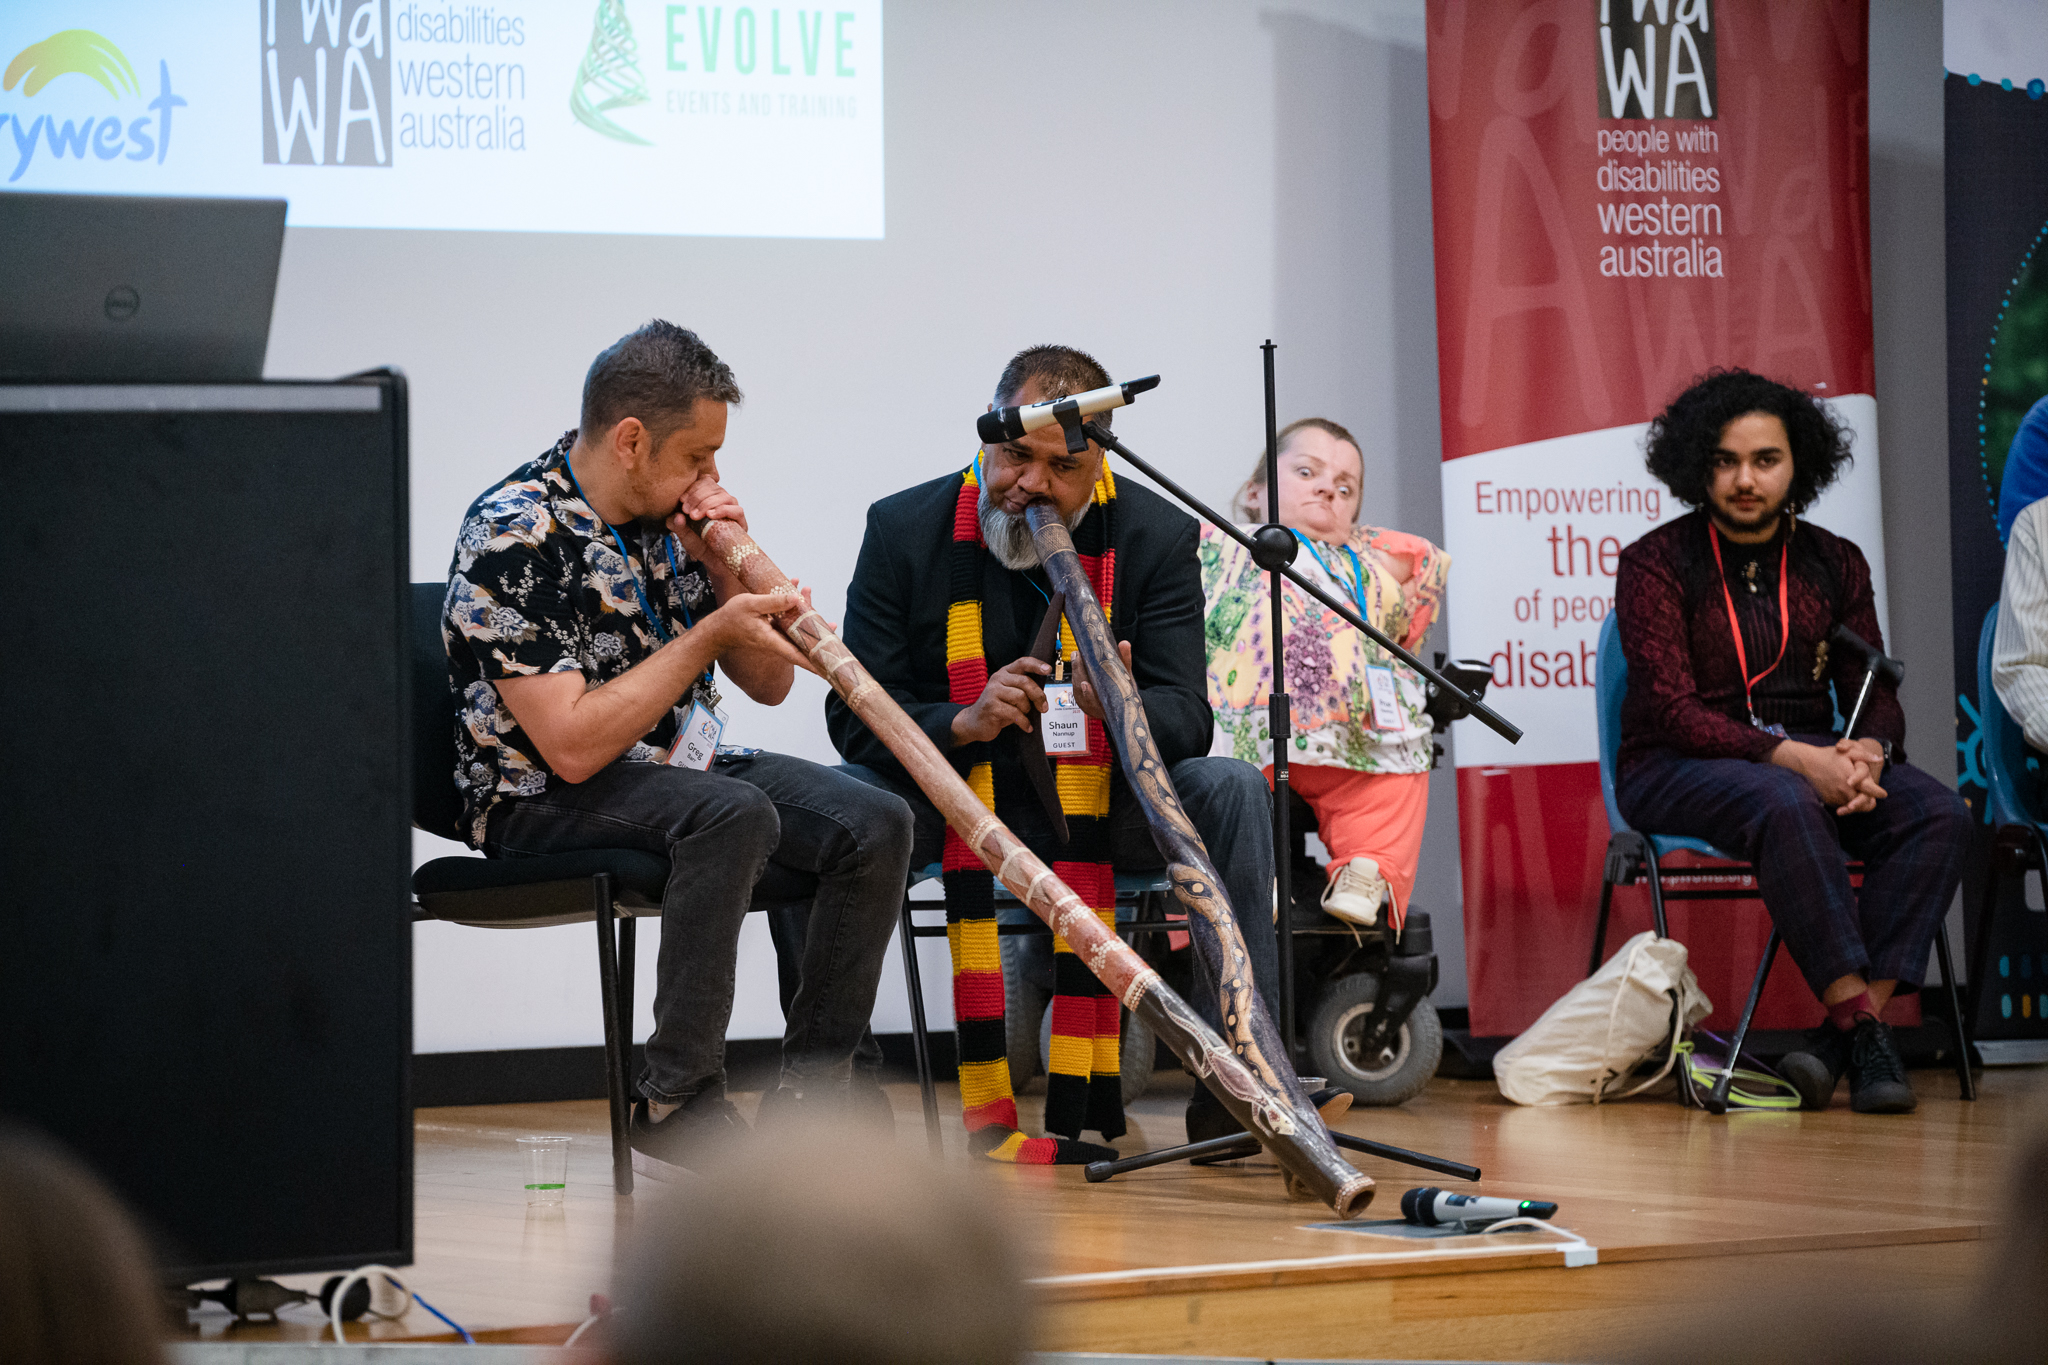 Photo of Shaun Nannup and Greg Barr playing the Digeridoo.